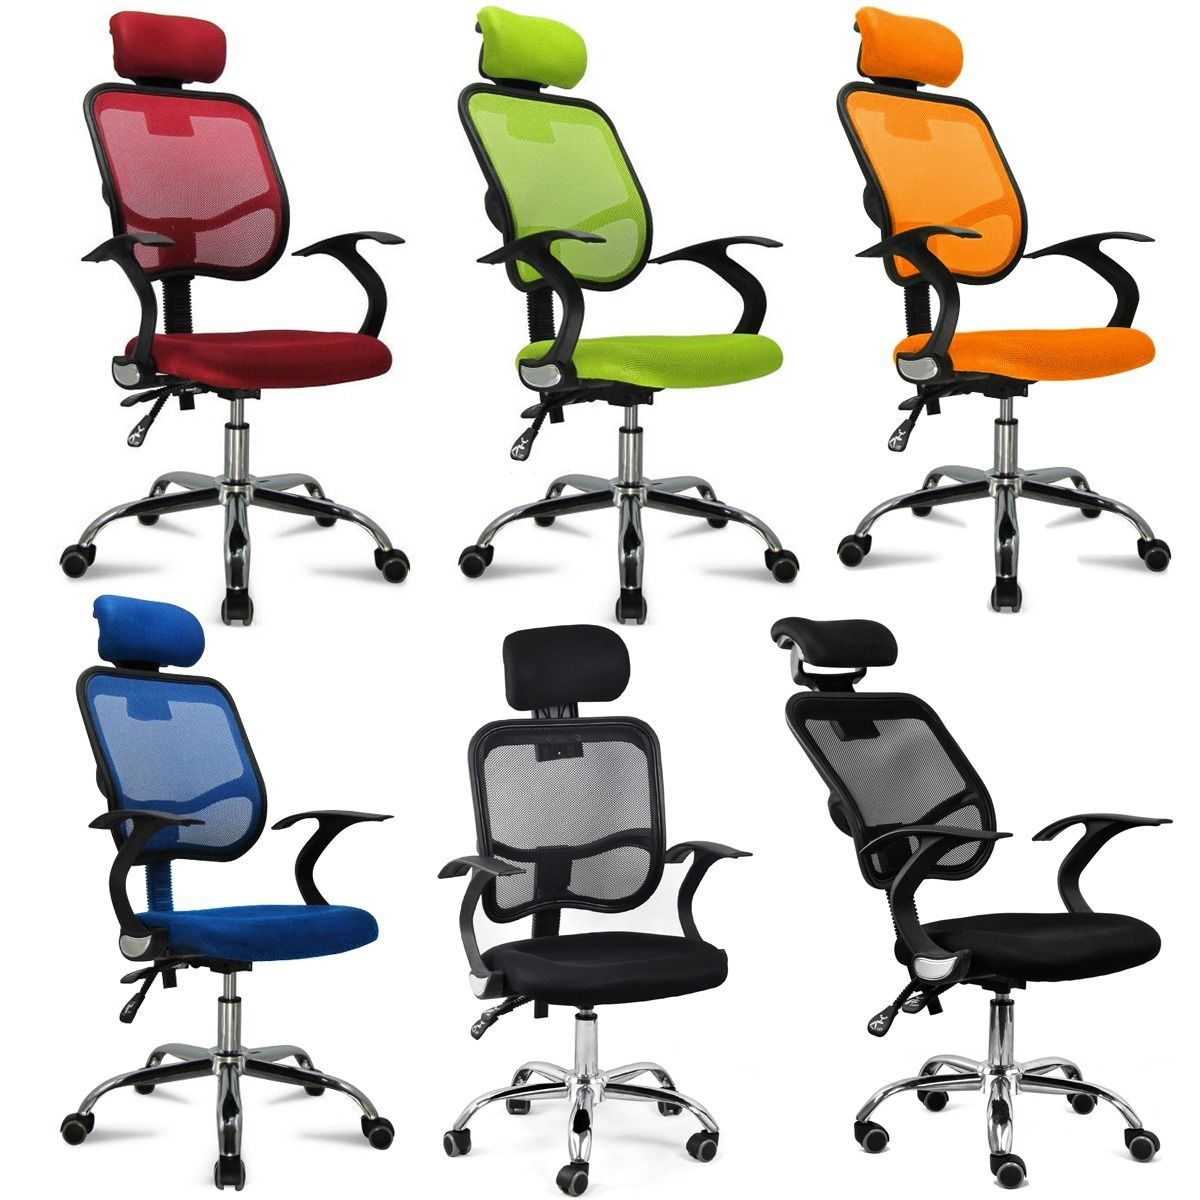 Adjustable Chrome Executive Office Computer Desk Chair Mesh Seat Fabric |  EBay